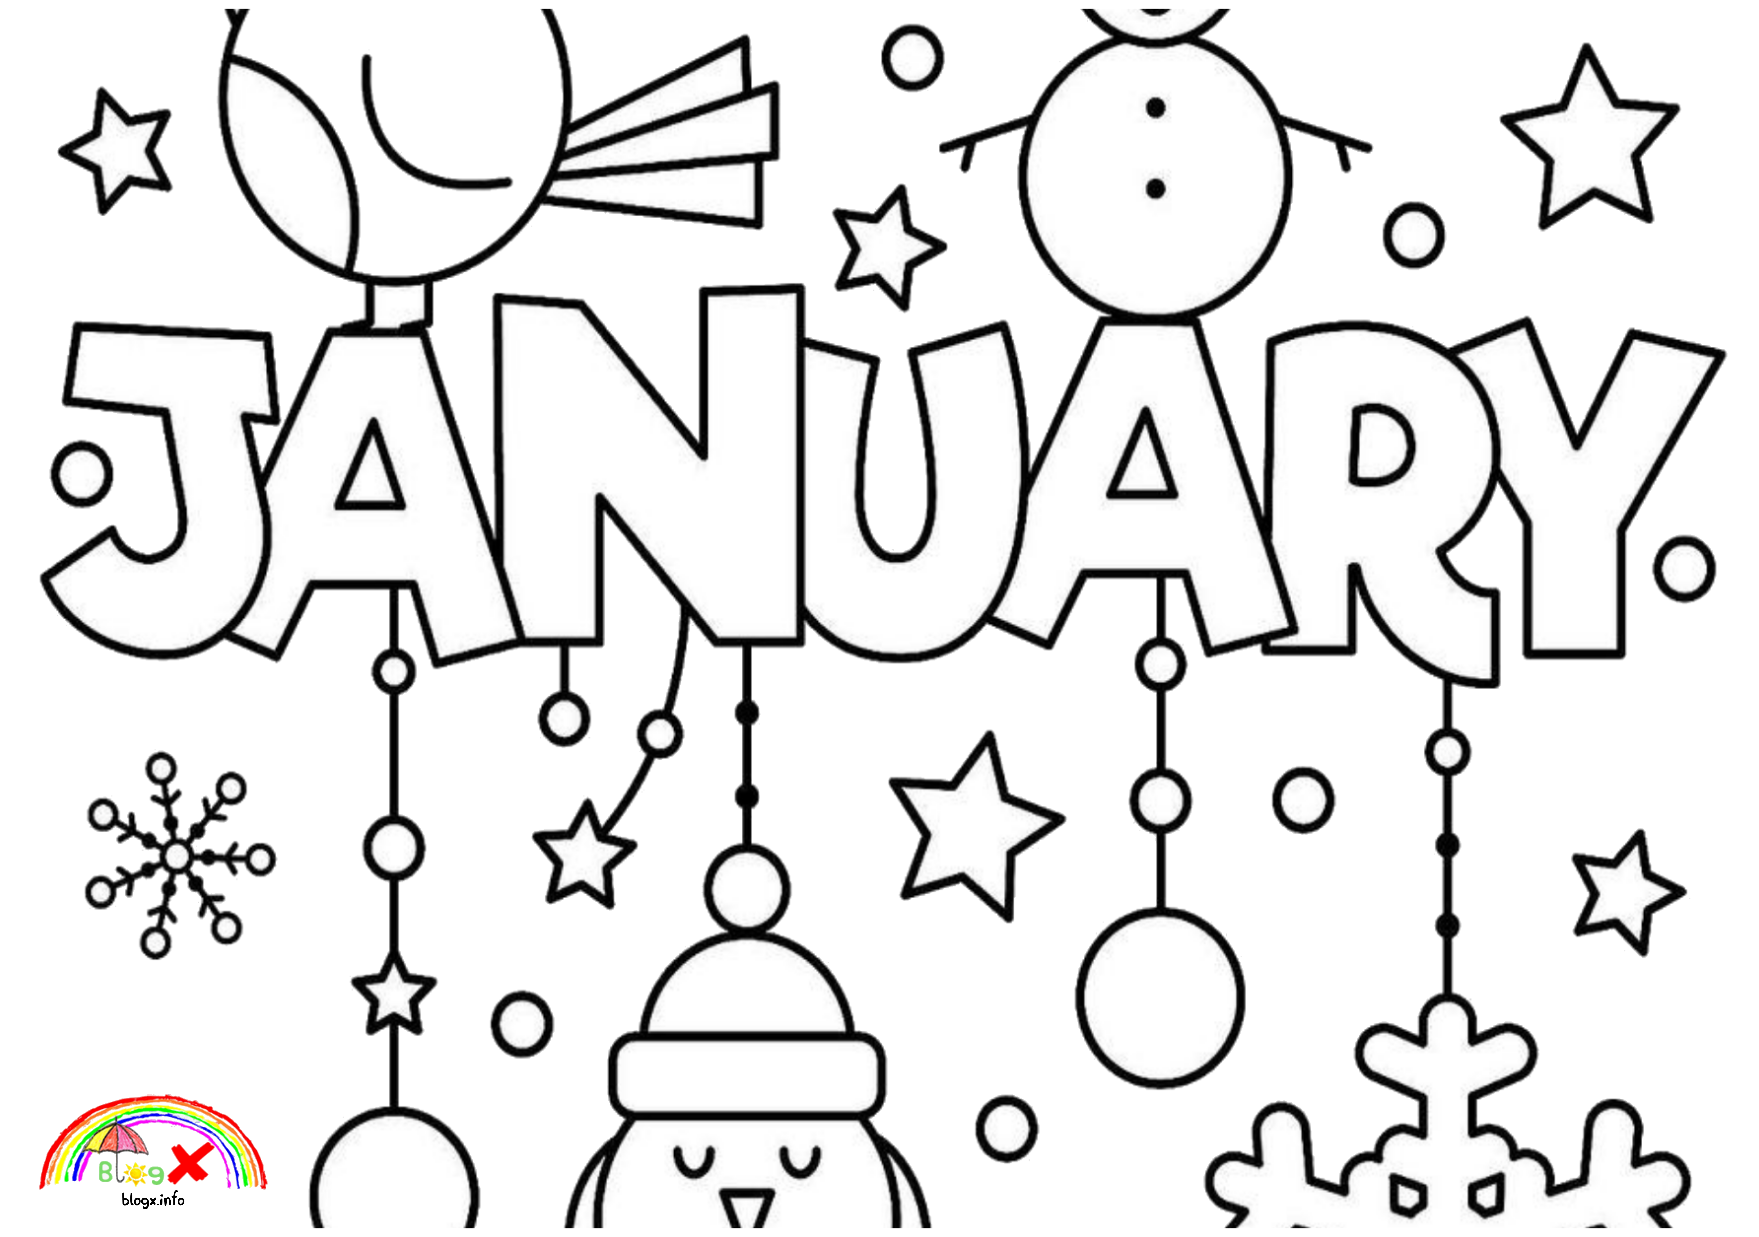 Pin By Heather Wilson On Coloring Pages New Year Coloring Pages Cool Coloring Pages Coloring Pages For Kids